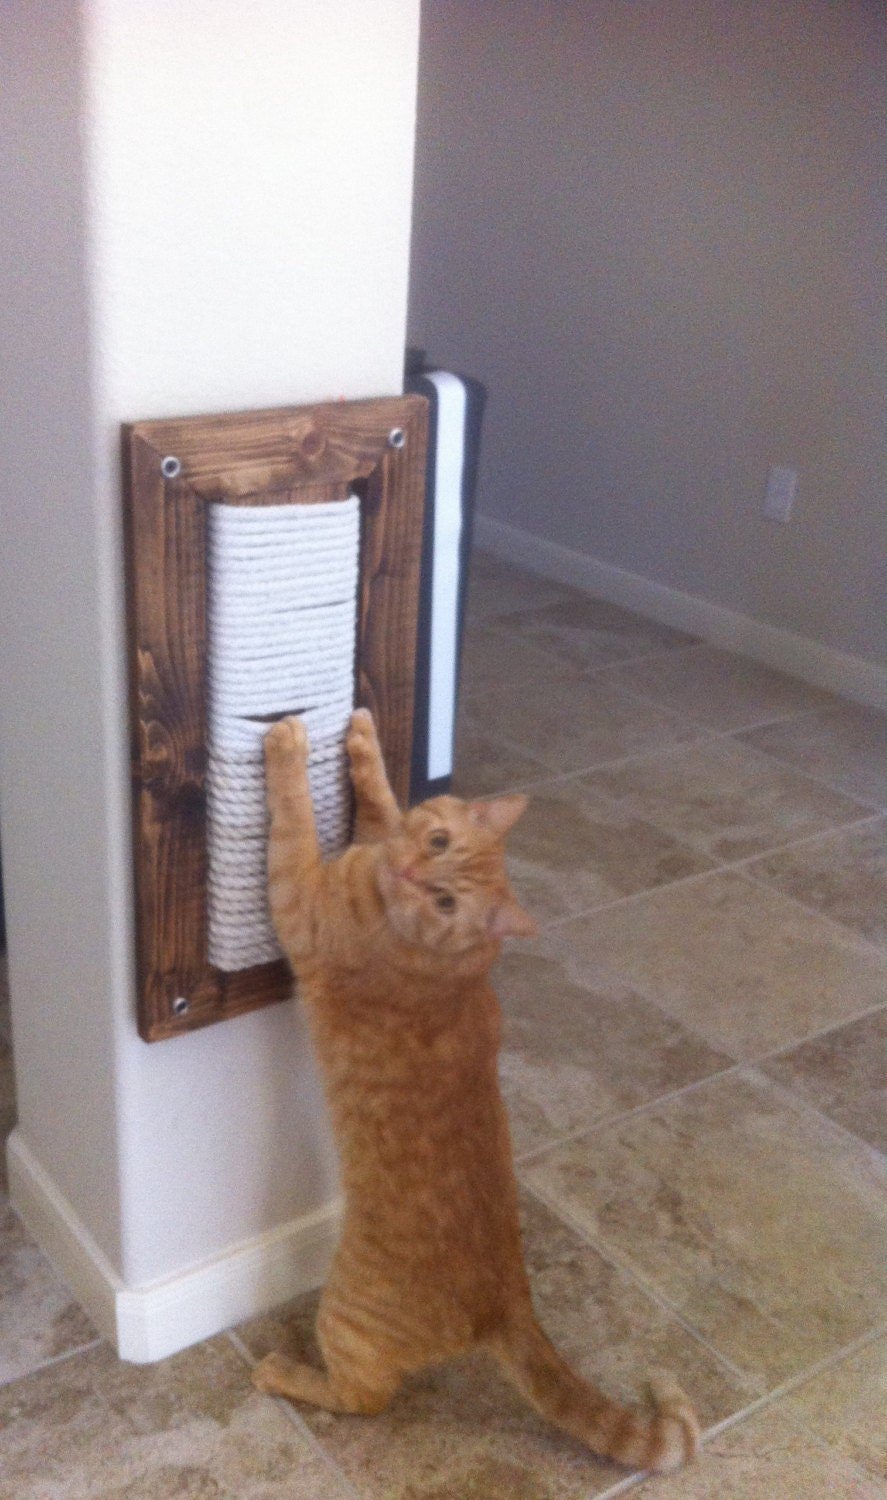 Items similar to wall mount scratching post for cats on etsy - Wall mounted cat scratcher ...